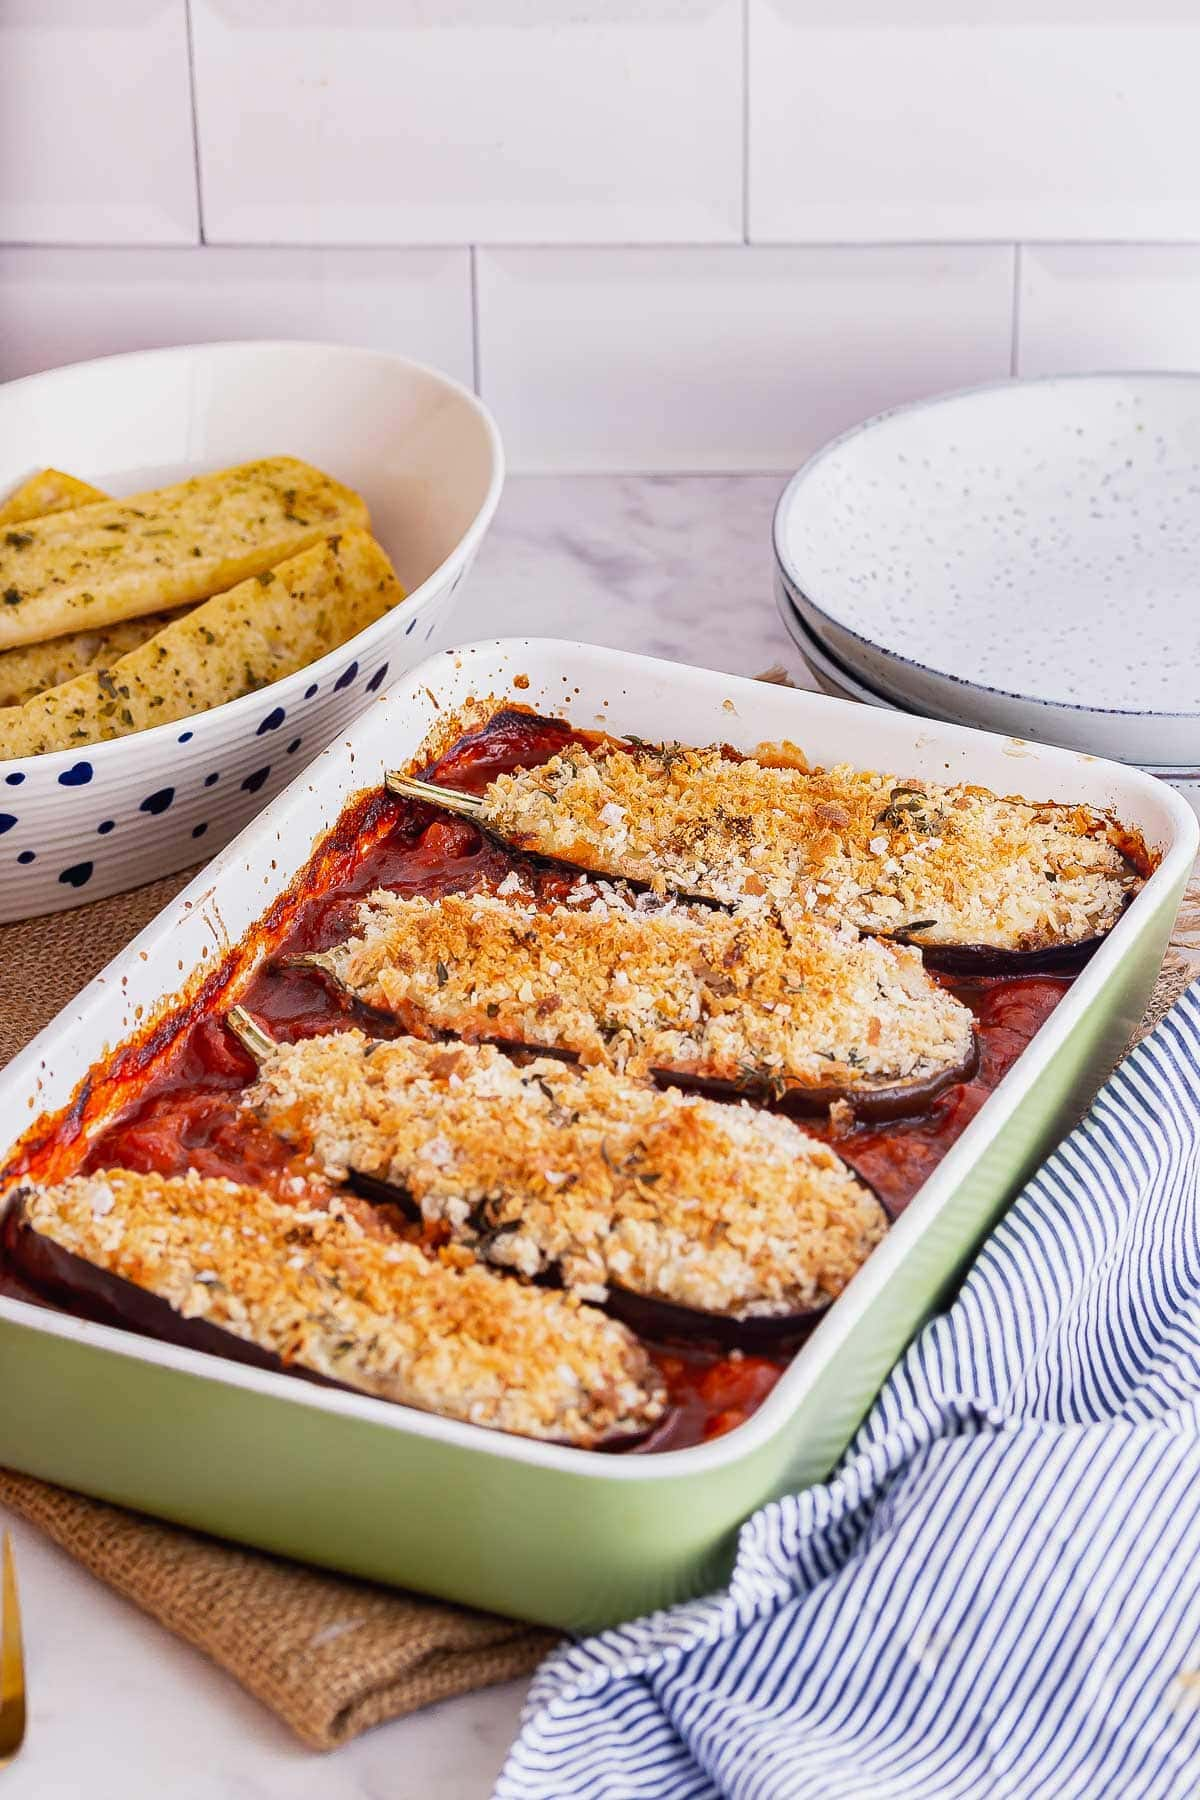 Green baking dish of baked aubergine in tomato sauce with a striped cloth